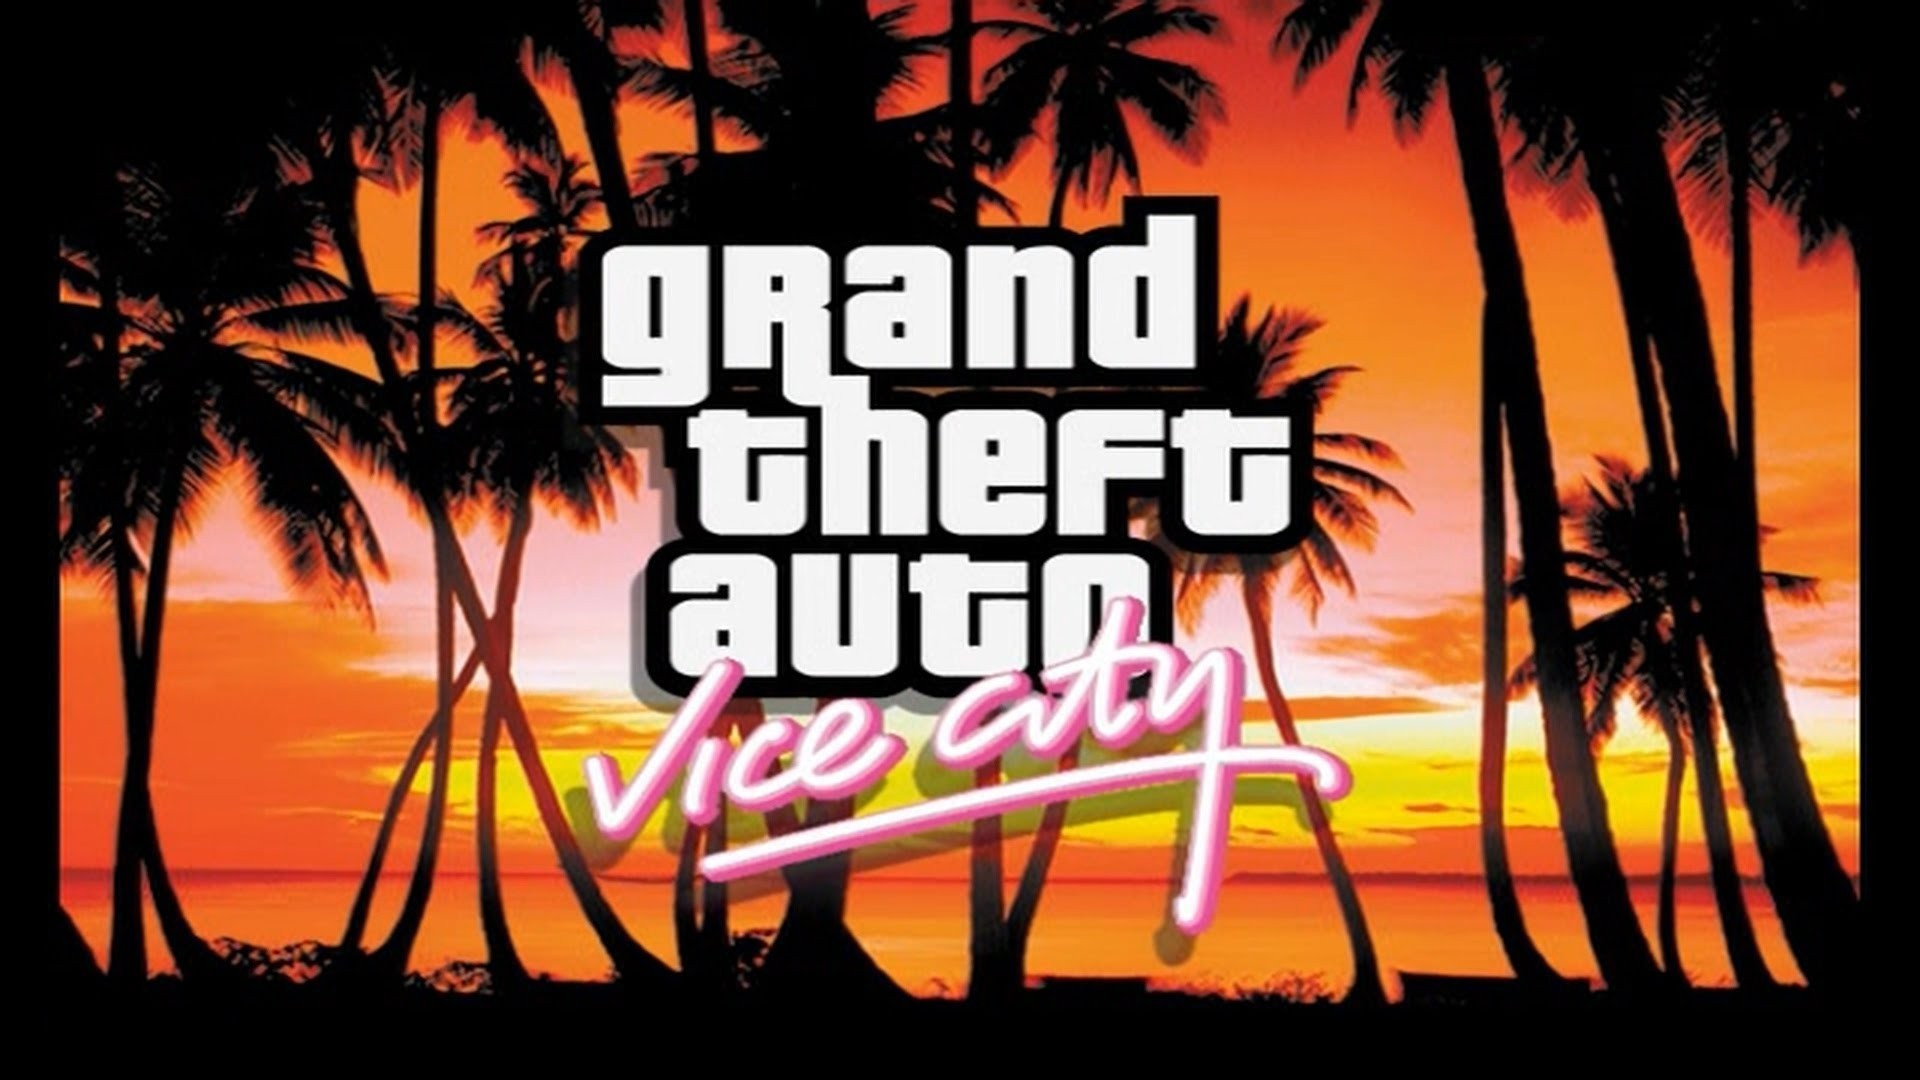 1920x1080 Grand Theft Auto: Vice City Cheats and Codes for PC